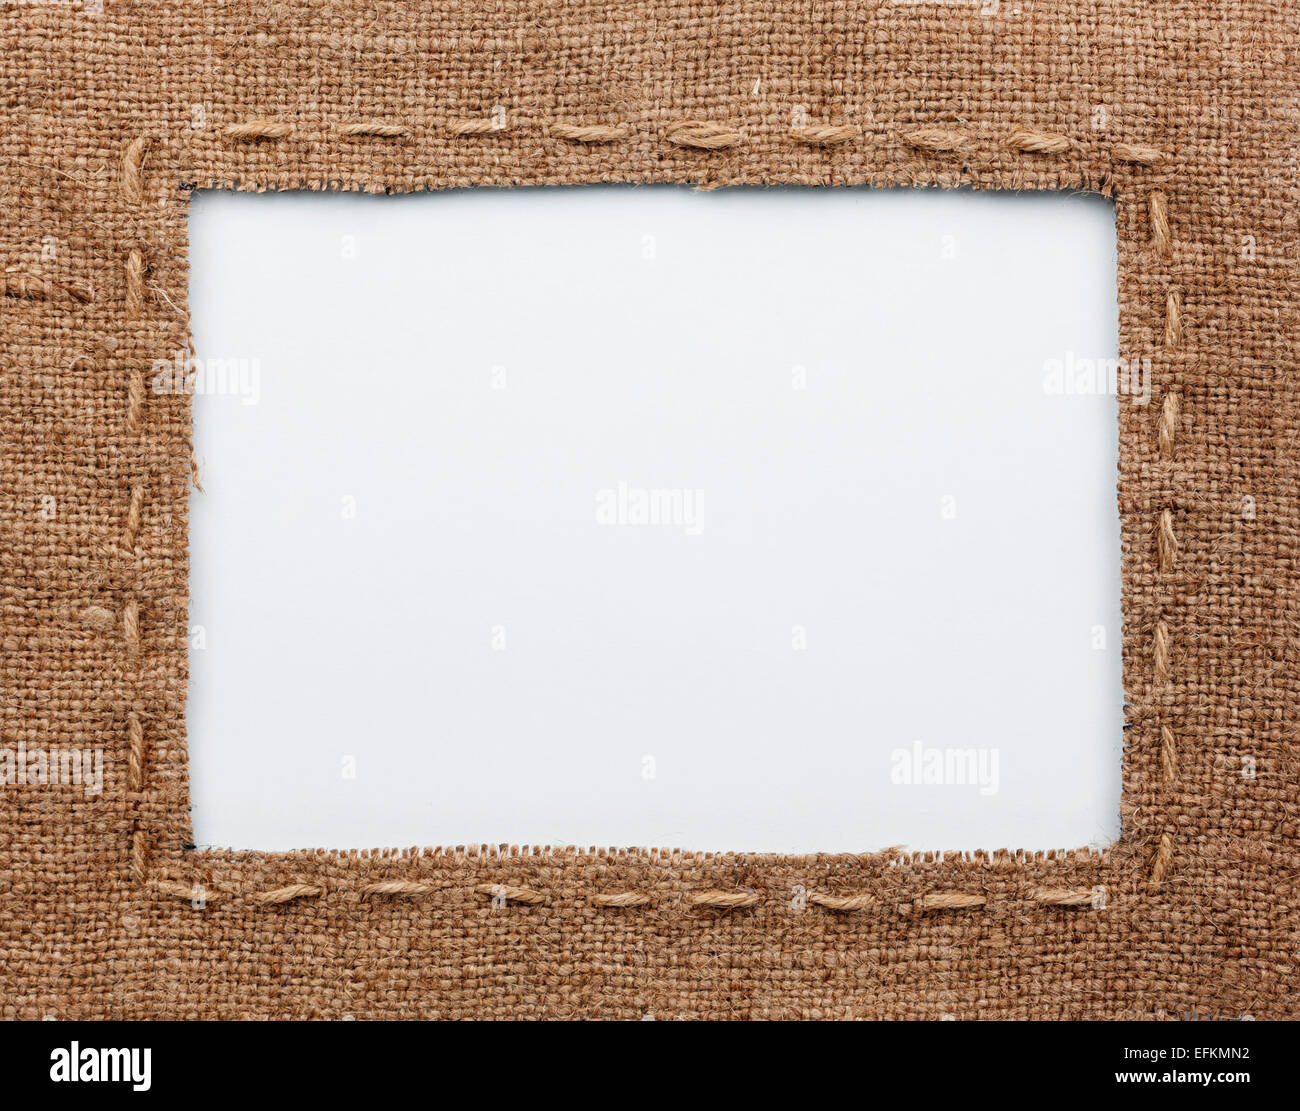 Frame of burlap, lies on a white background, can be used as texture ...